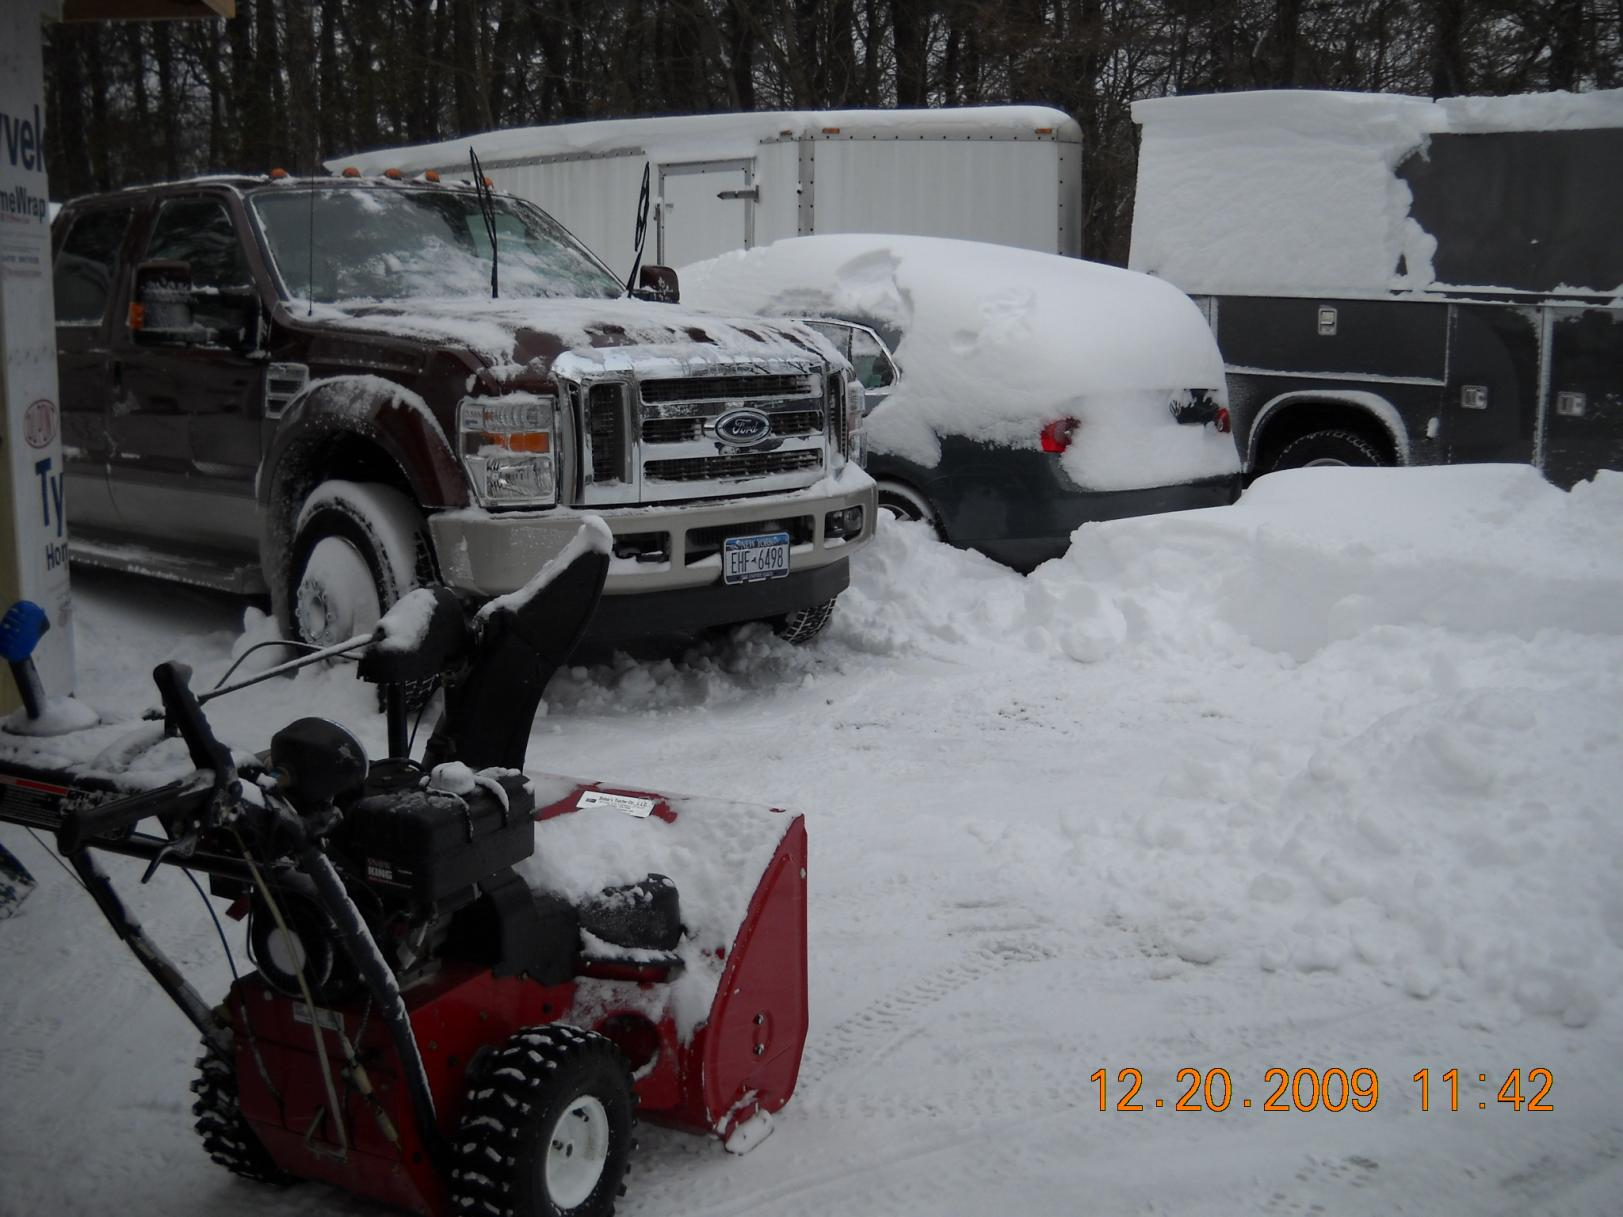 How about this winter Christmas weather?-winter-storm-12-20-09-020.jpg